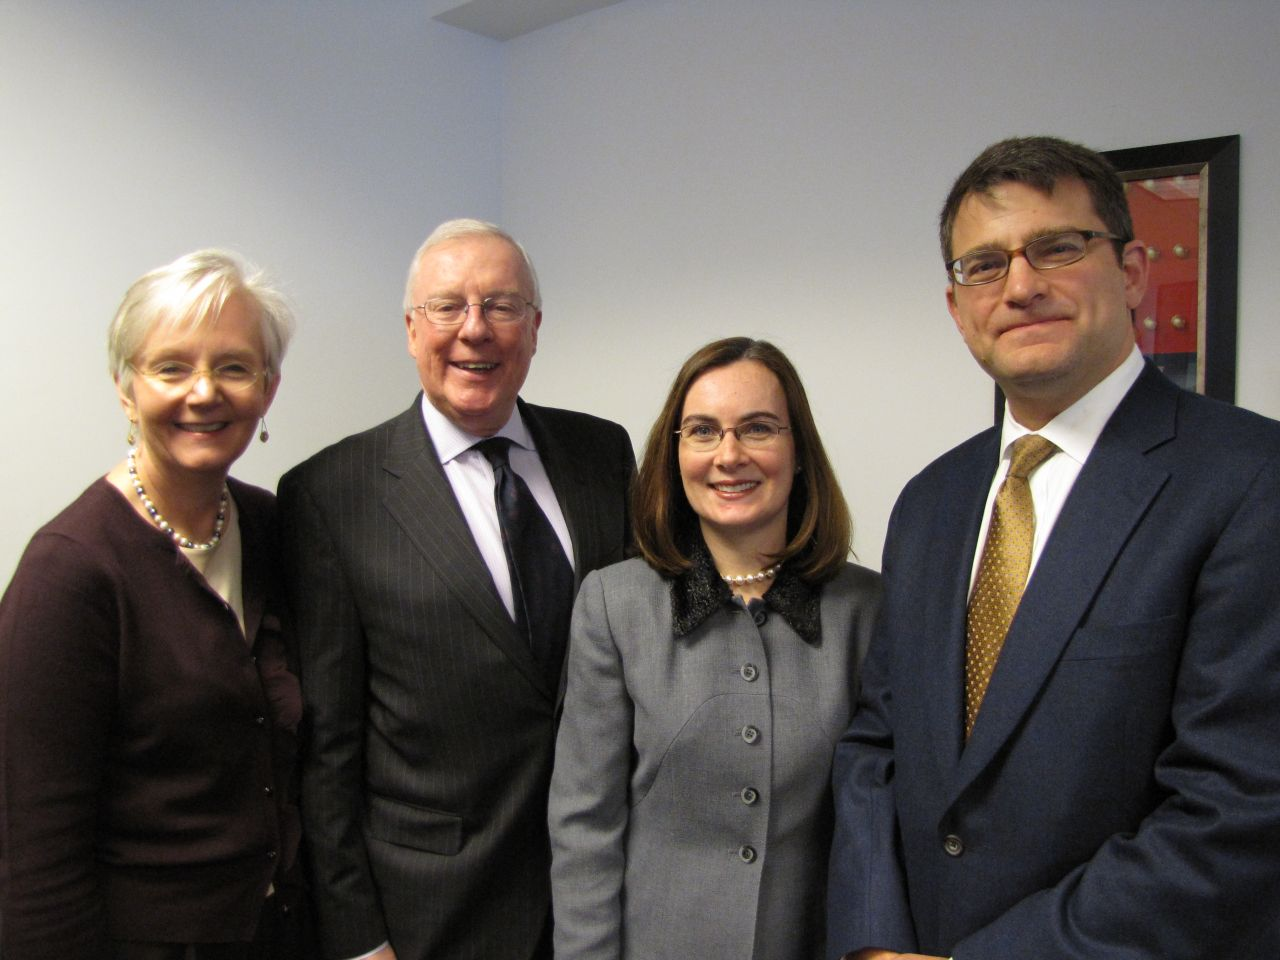 ISBA Board of Govenors member Hon. Mary Jane Theis, ISBA President John O'Brien, Appellate Lawyers Association Vice President Jean Prendergast and Appellate Lawyers Association President Gary Feinerman